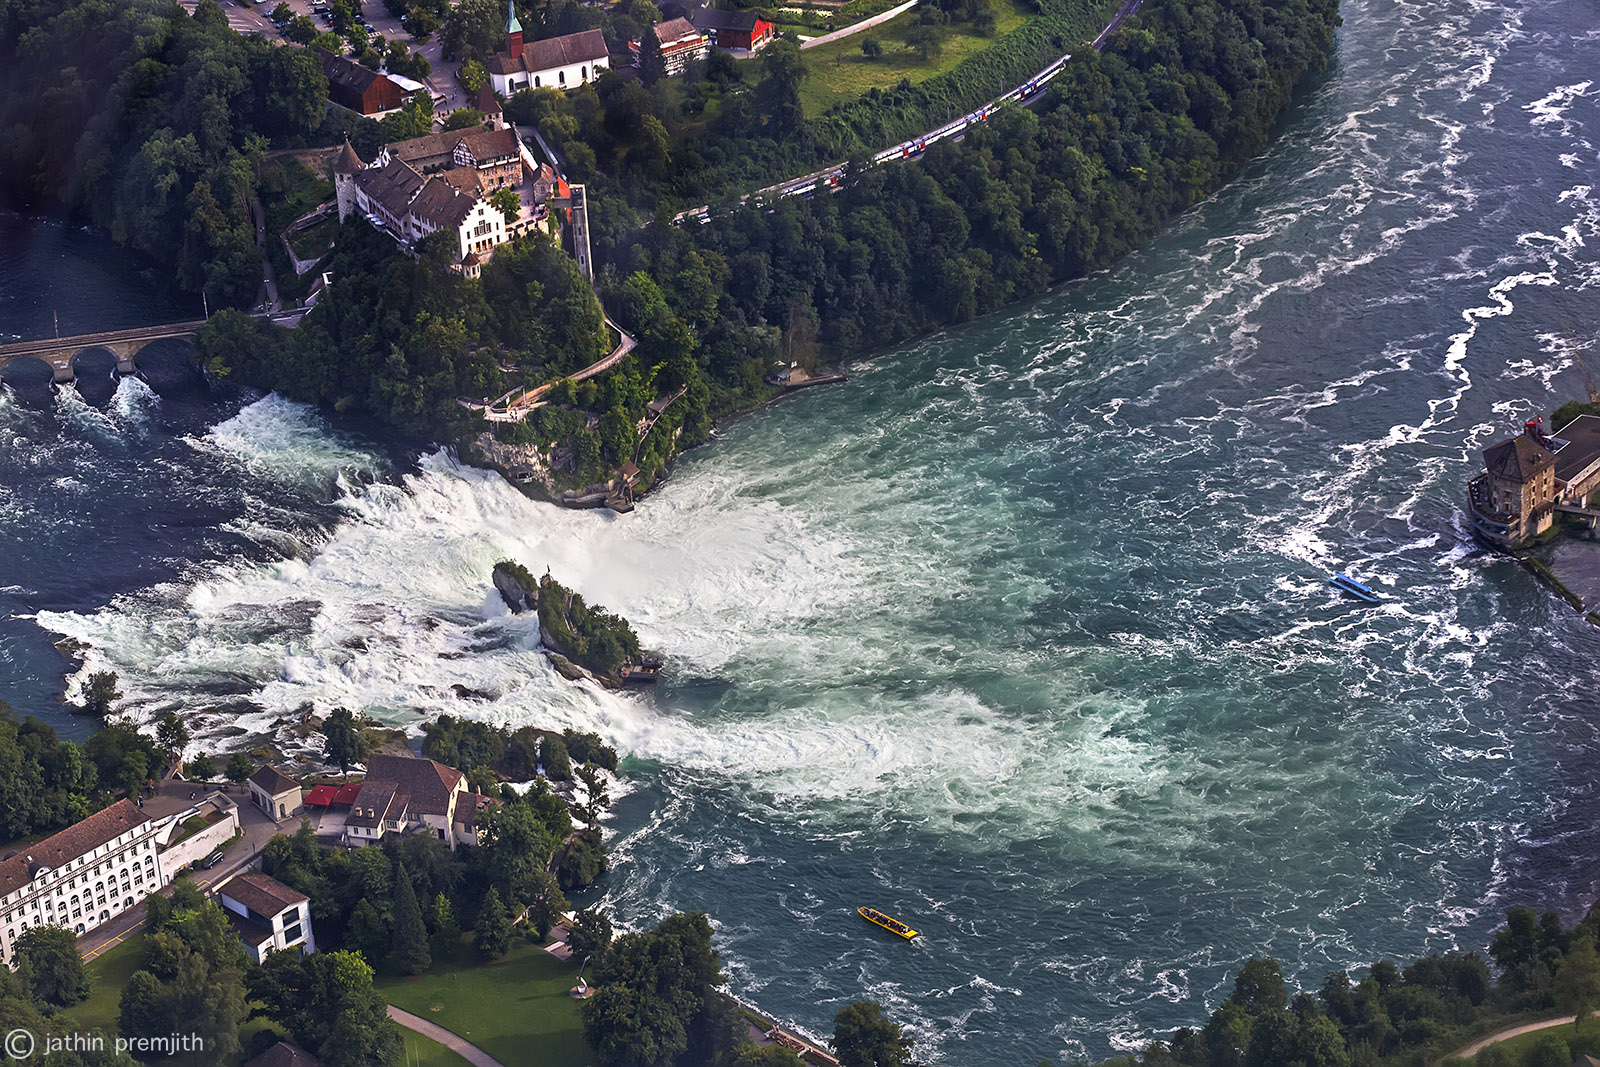 """RHINFALL"" - THE  BIGGEST  WATERFALL  OF  EUROPE."